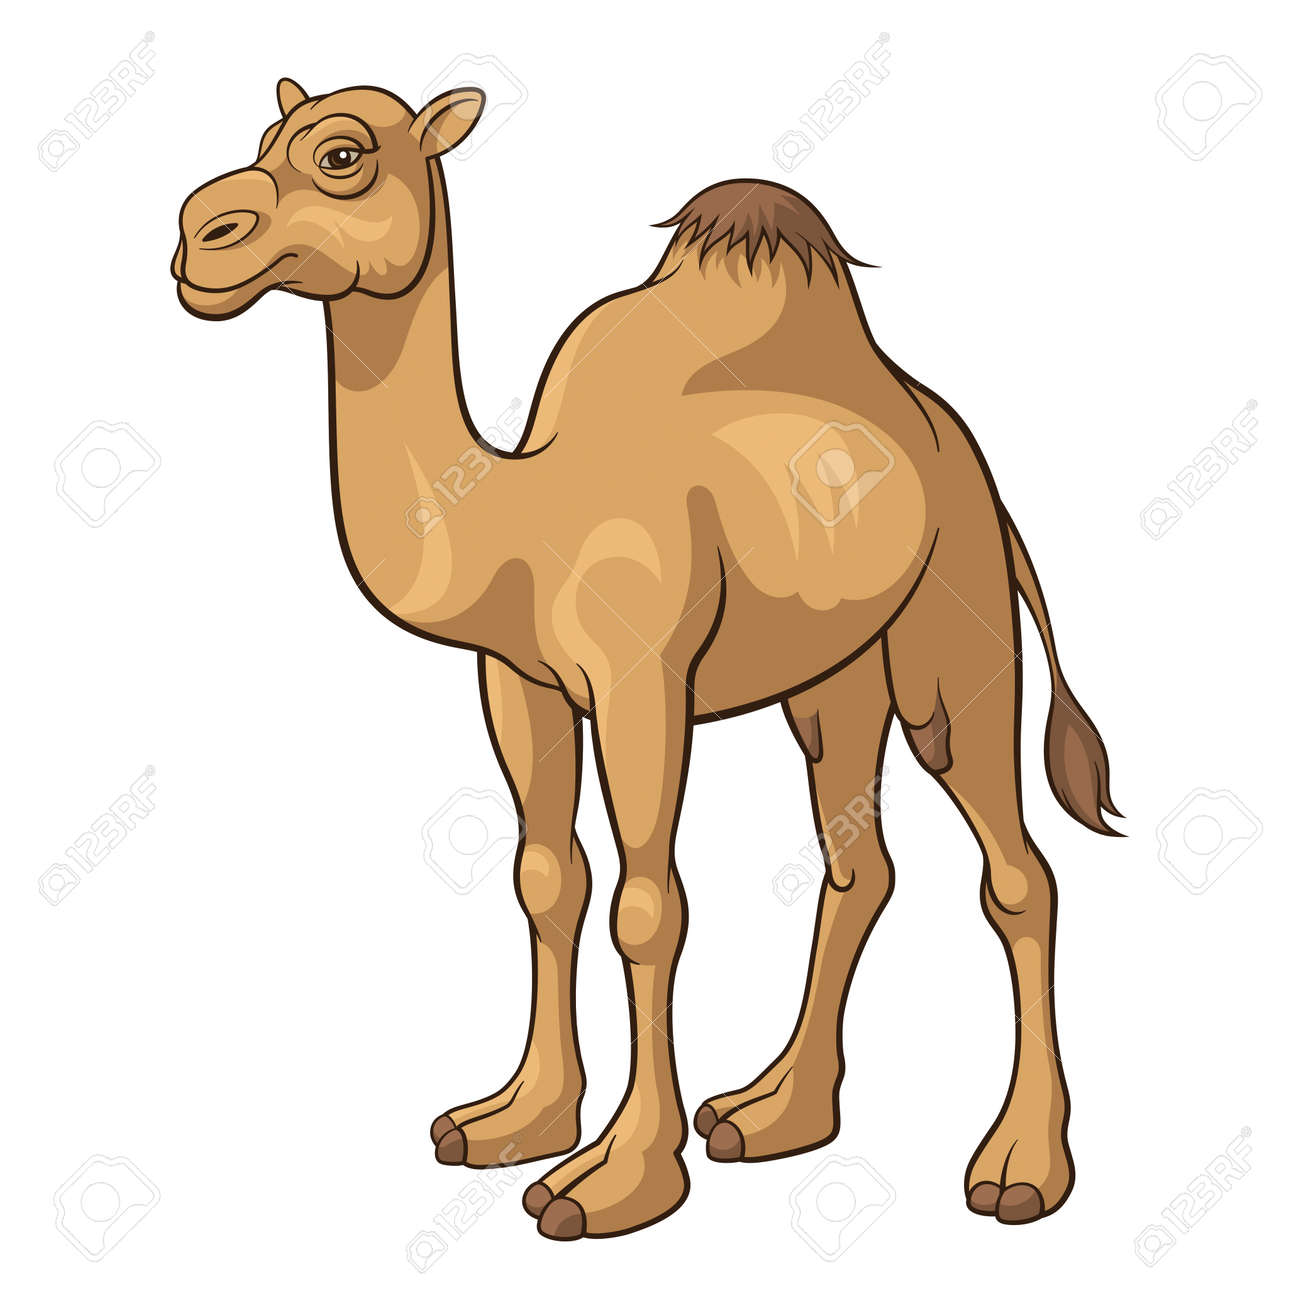 Cartoon camel isolated on a white background, vector illustration - 24560650